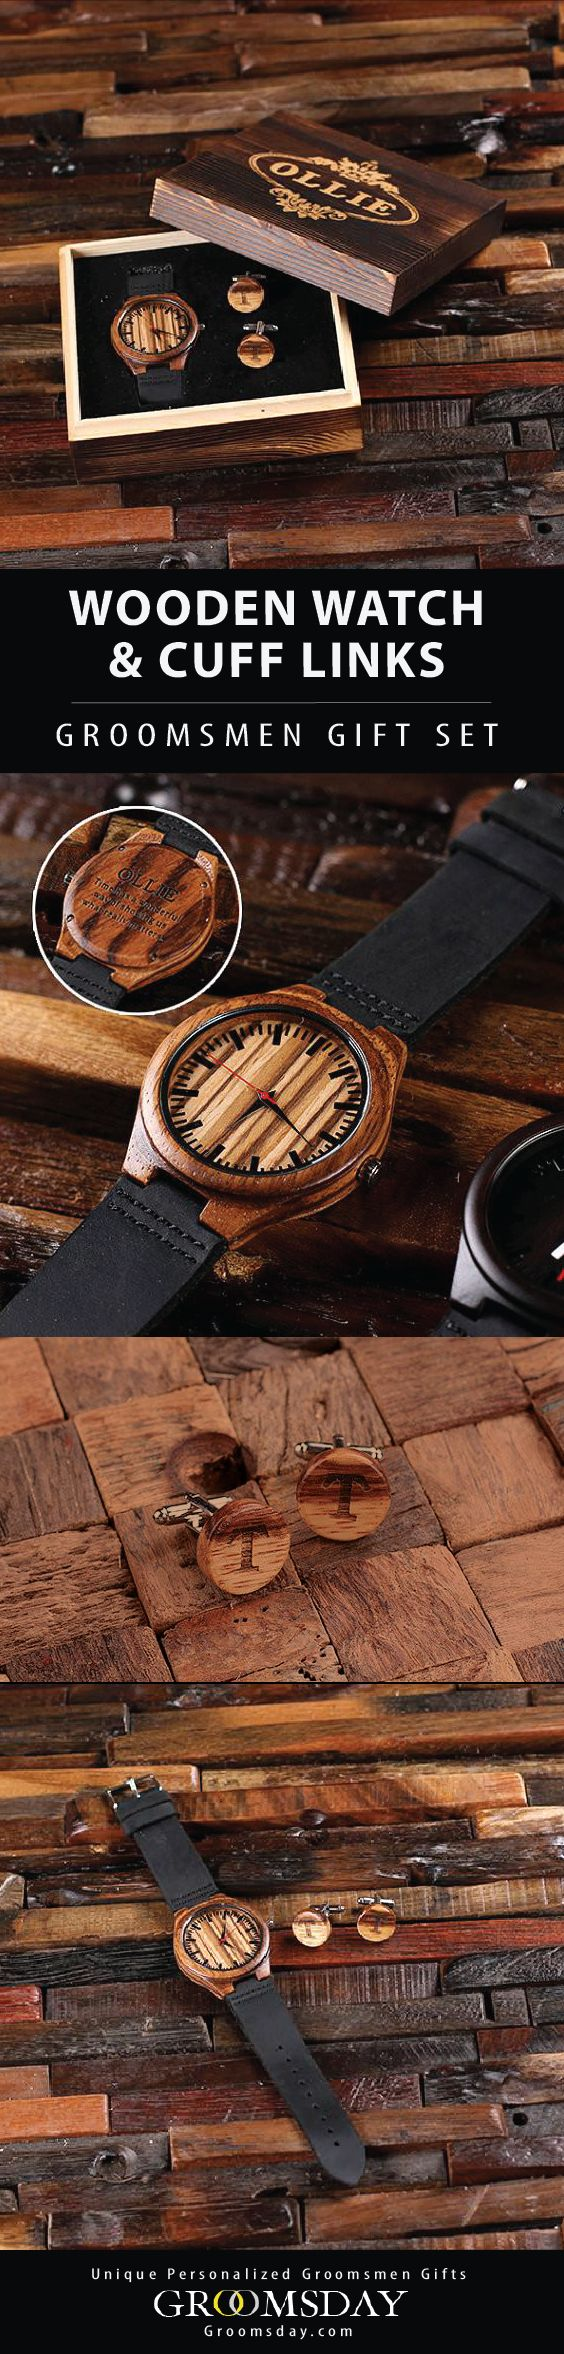 Stylish, eco-friendly wood watch and cuff link set is made from durable bamboo wood with Japanese quarts movements, and leather straps. Makes a great groomsmen gift. Comes in a engraved wooden gift keepsake box any groomsmen would admire. Be sure to pin and follow for more incredible groomsmen gifts || Groomsday.com #watches #cufflinks